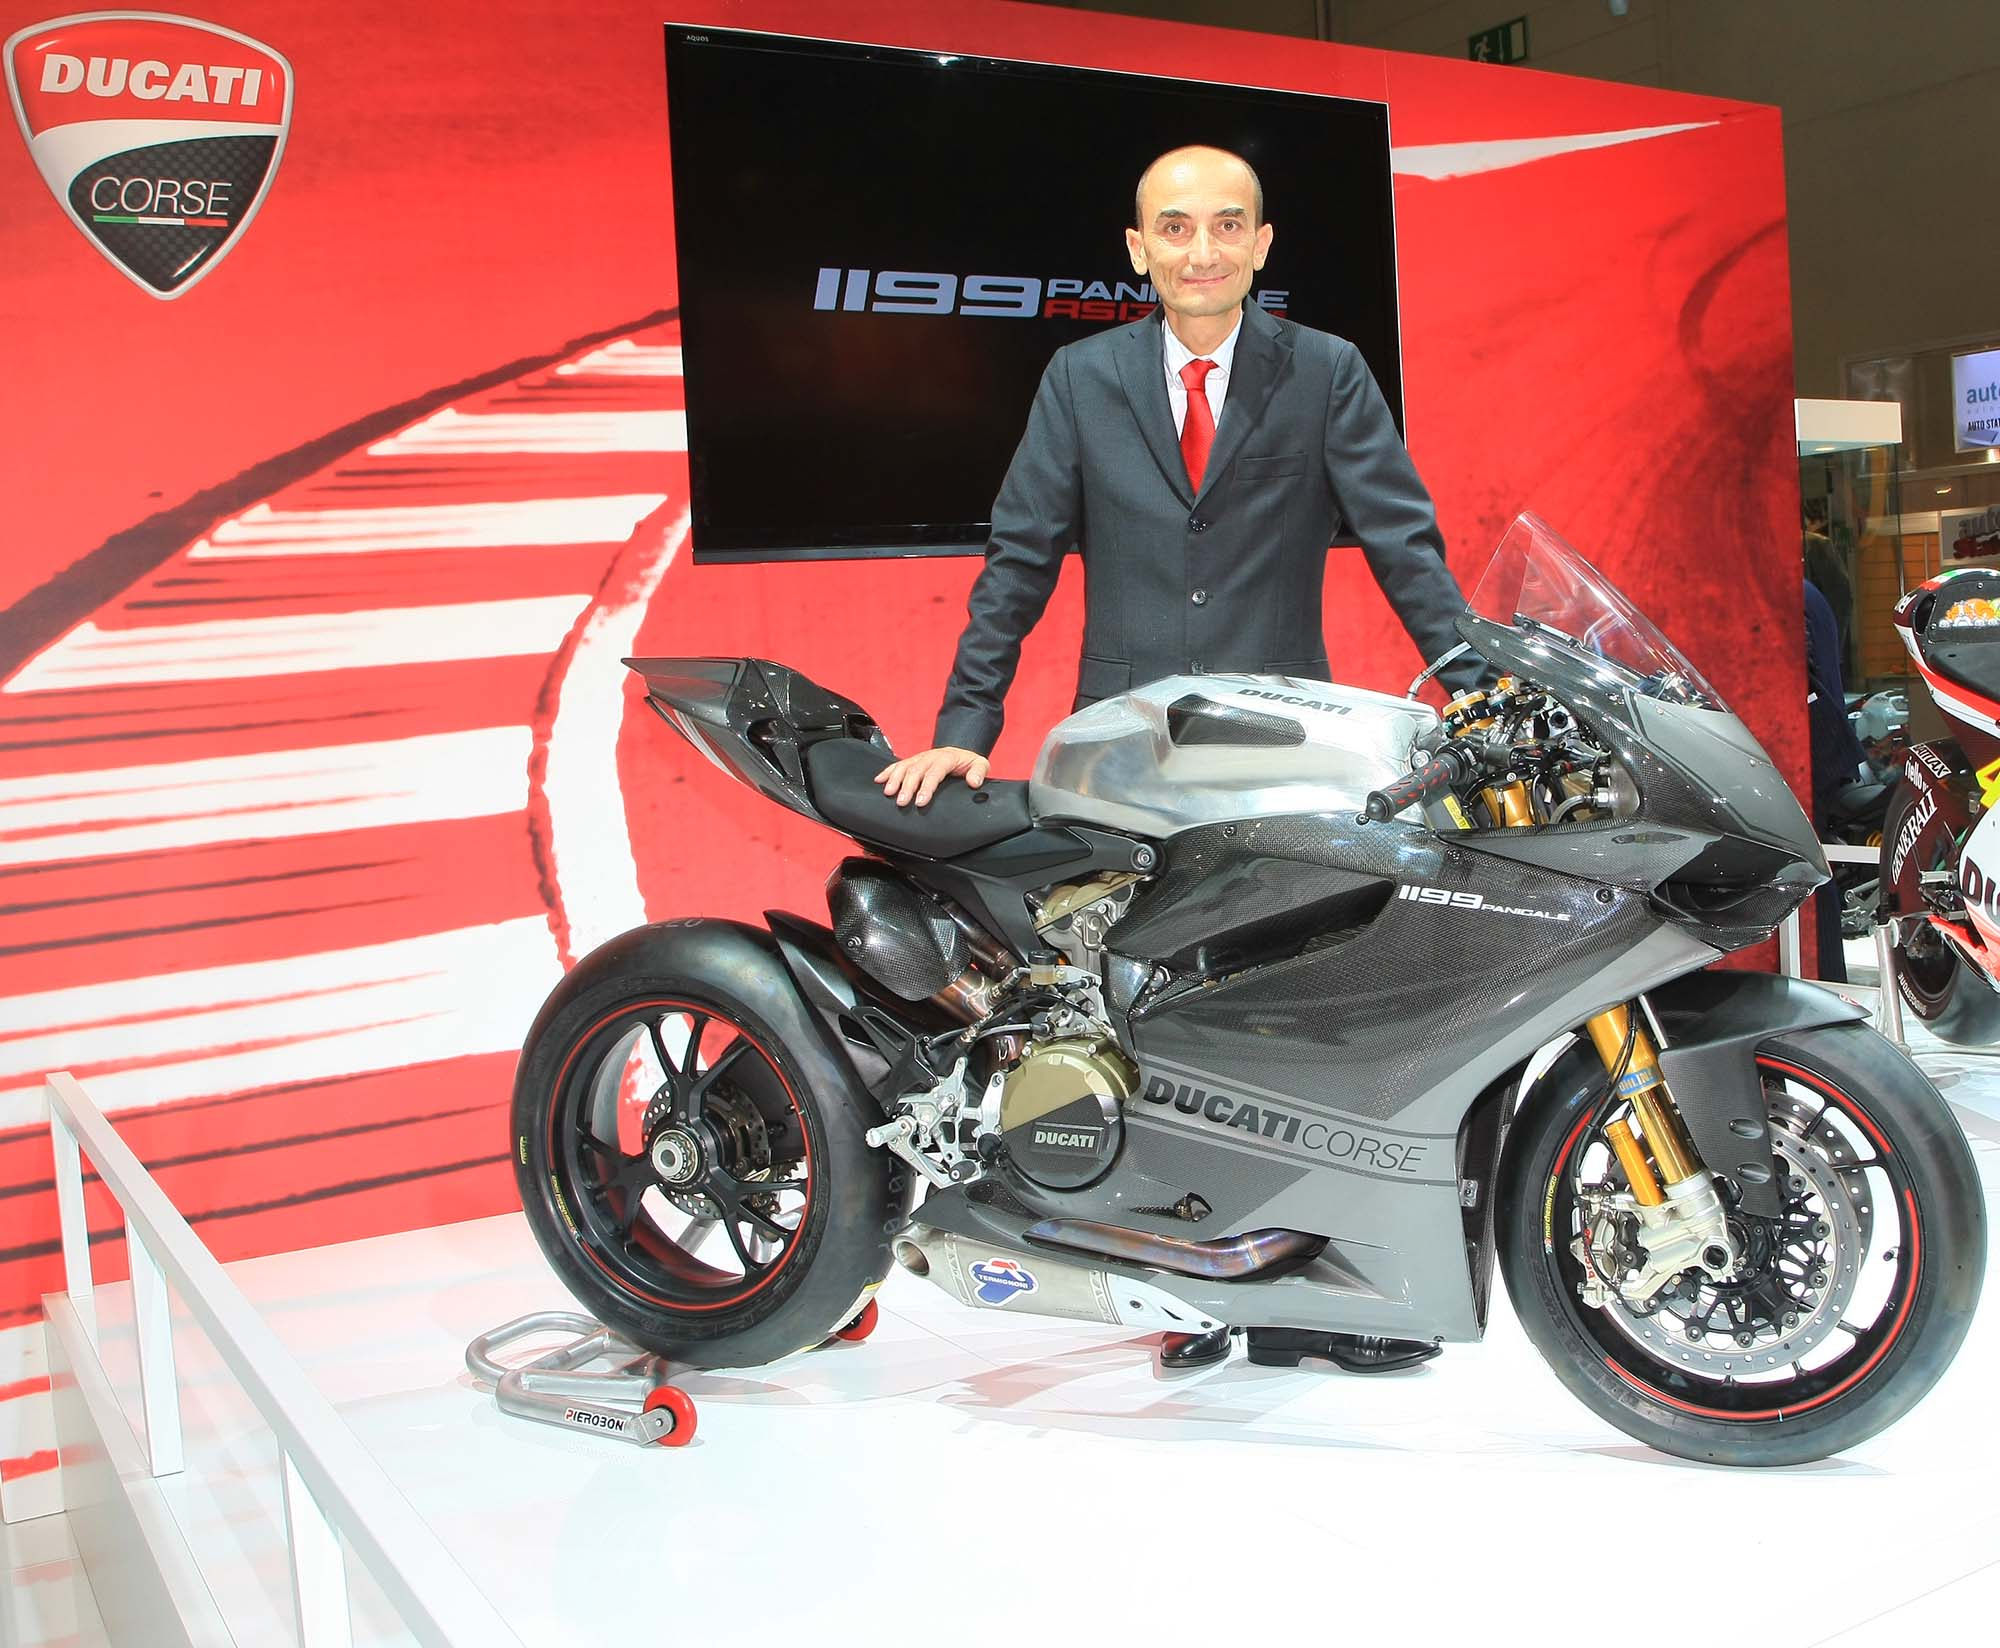 ducati 1199 Panigale ( Topic N.3 ) - Page 3 1390942013Ducati1199PanigaleRS1303